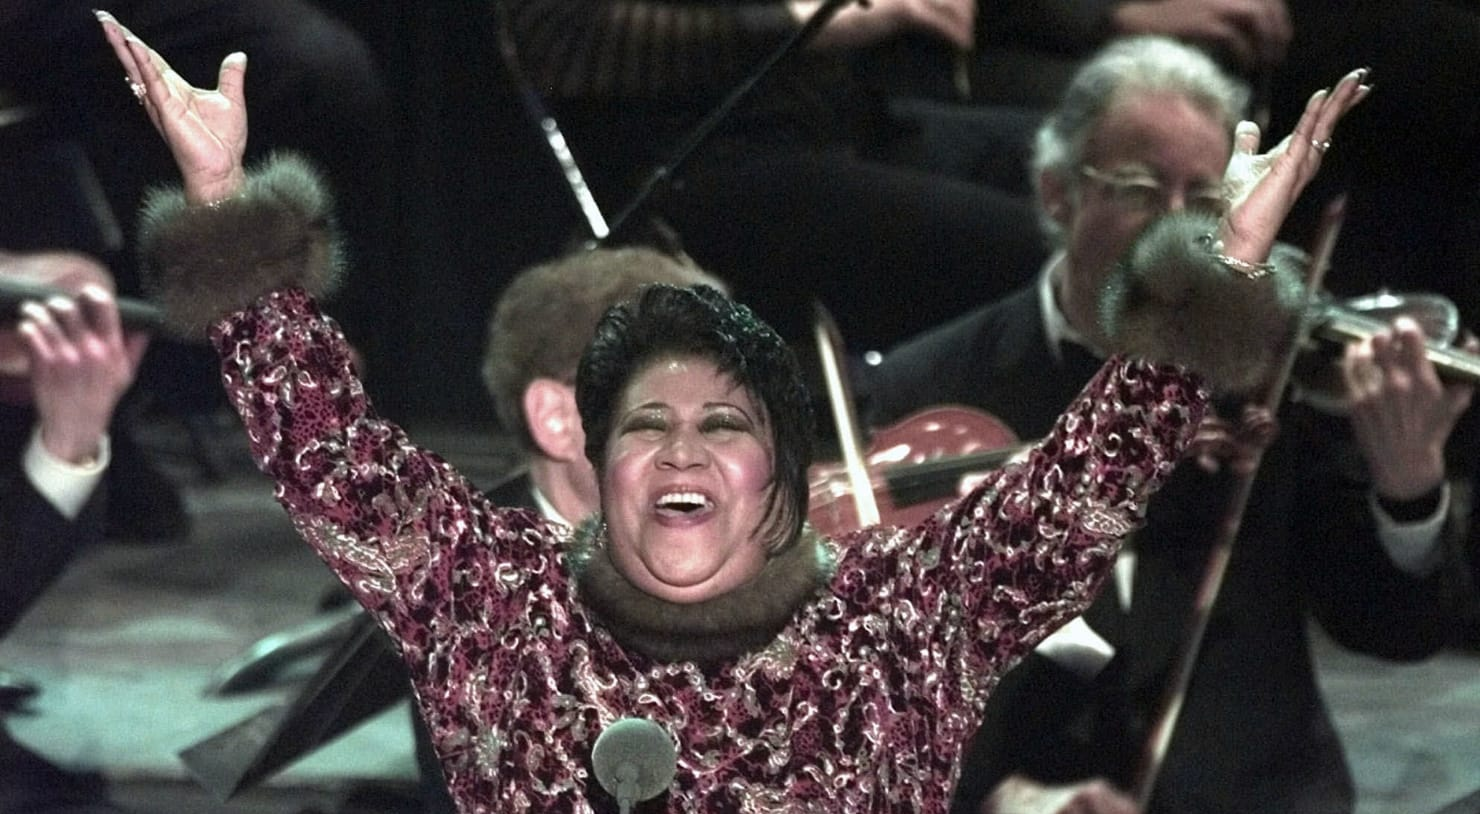 Throwback to when Aretha Franklin filled-in for an ailing Pavarotti and stunned everyone